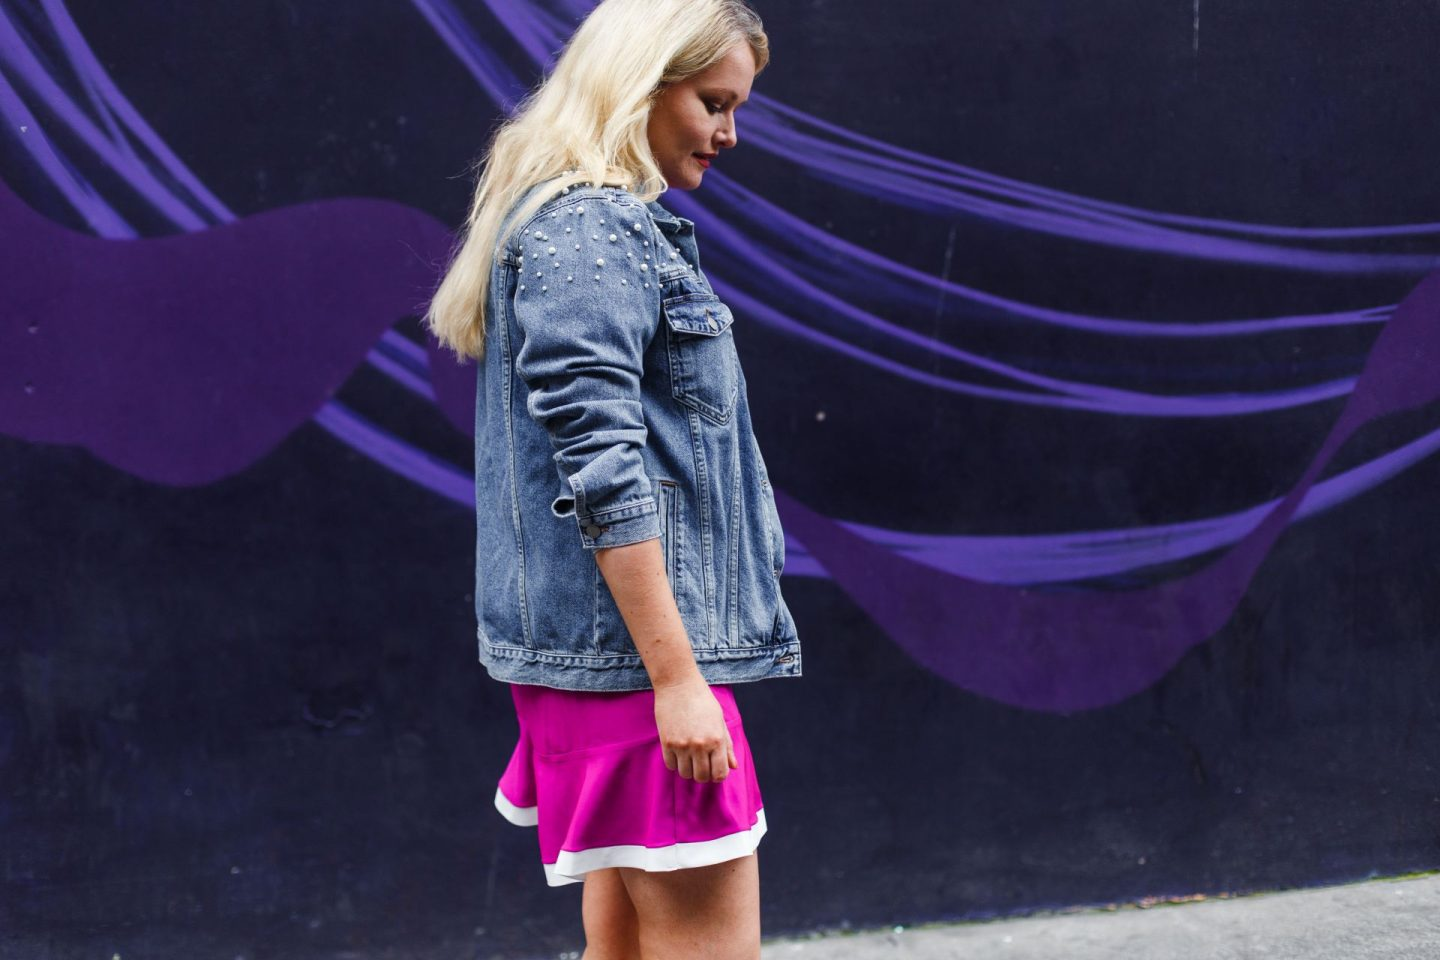 THE DENIM TREND I AM OBSESSED WITH